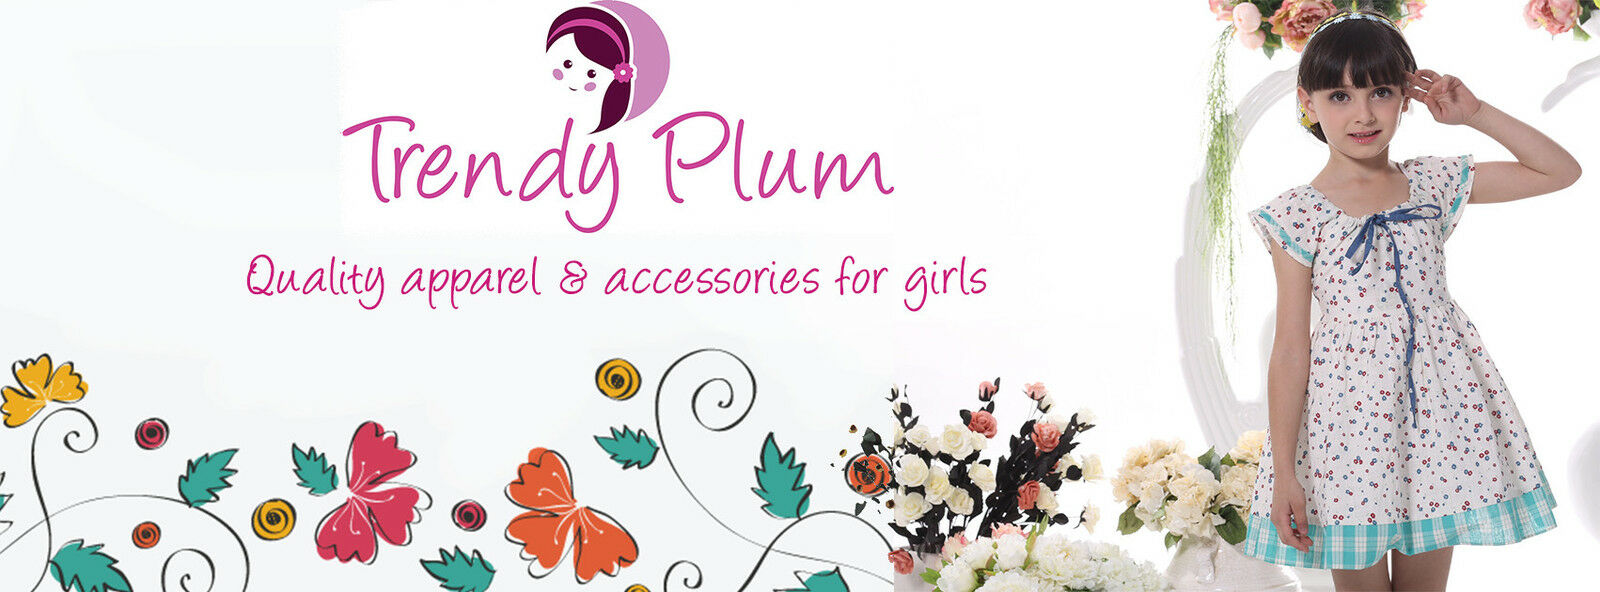 Trendy Plum Girls Apparel